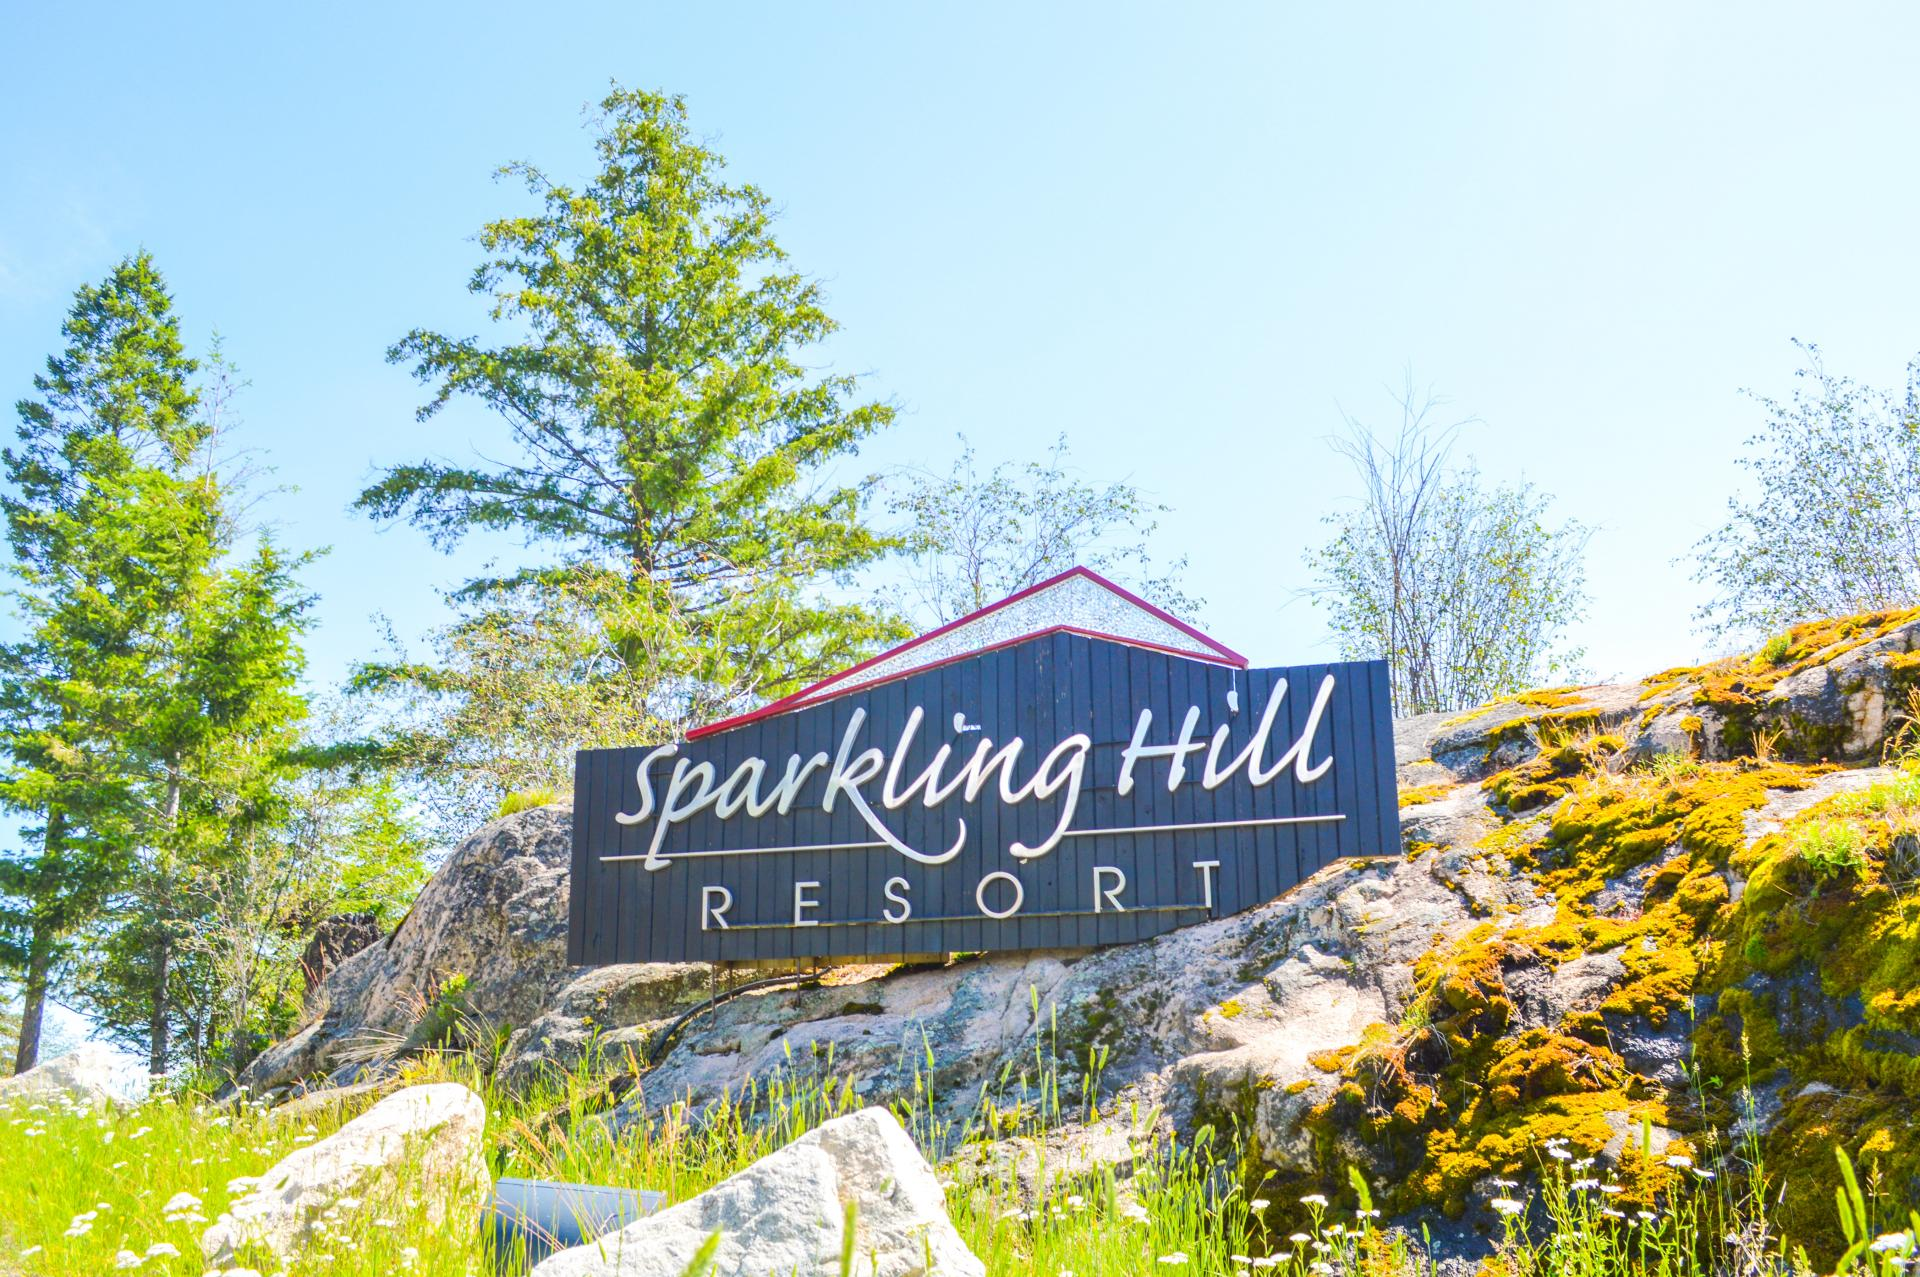 Sparkling Hill Resort